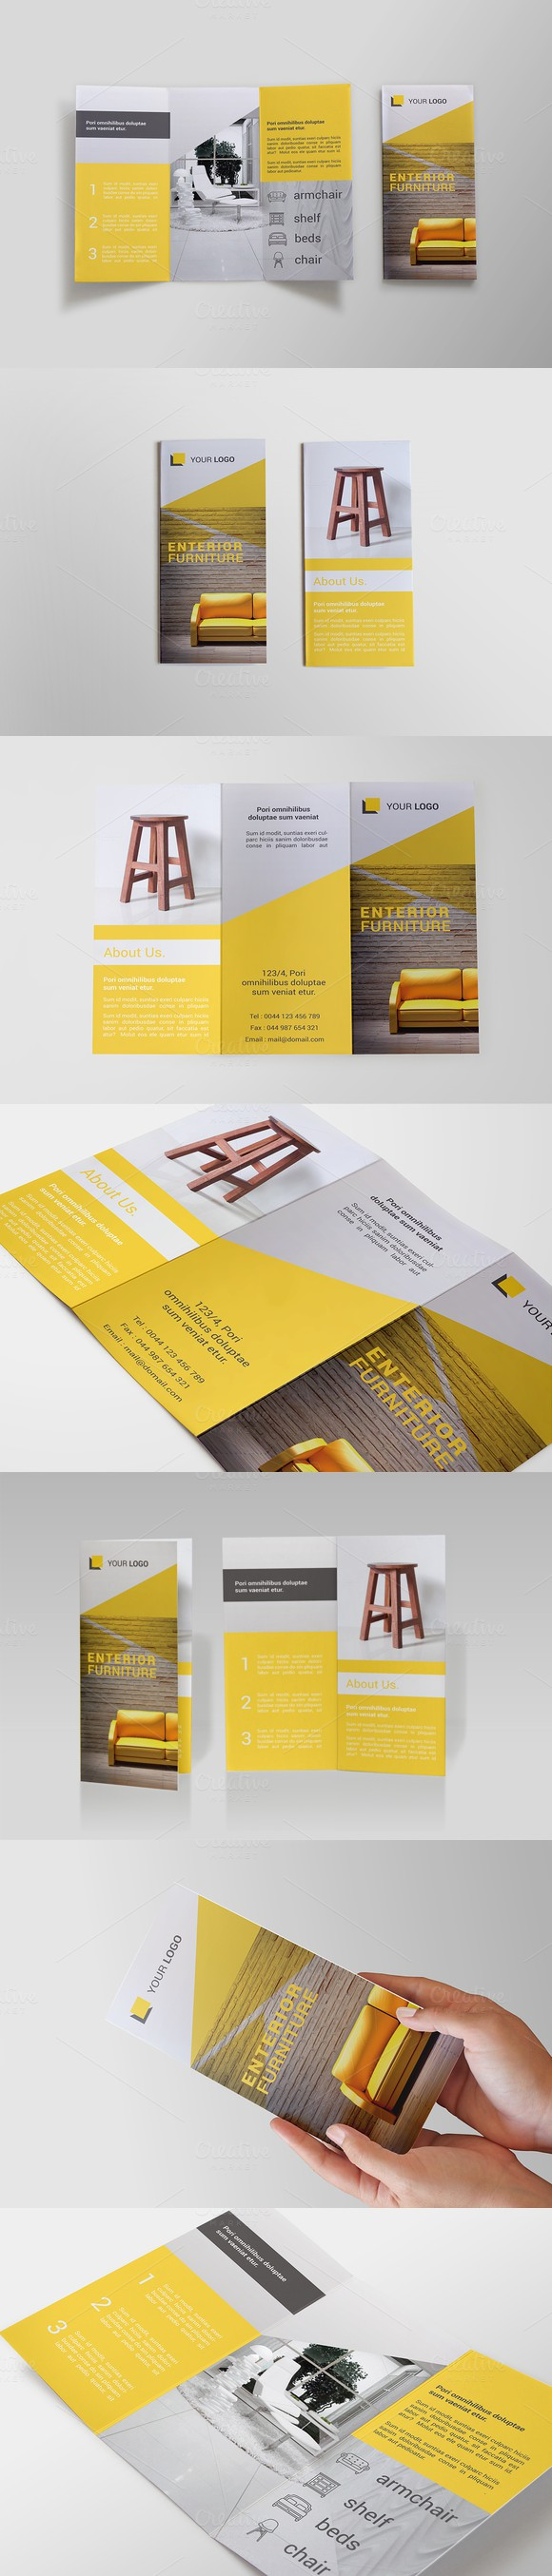 Furniture tri fold brochure bms brochure templates for Furniture brochure design inspiration